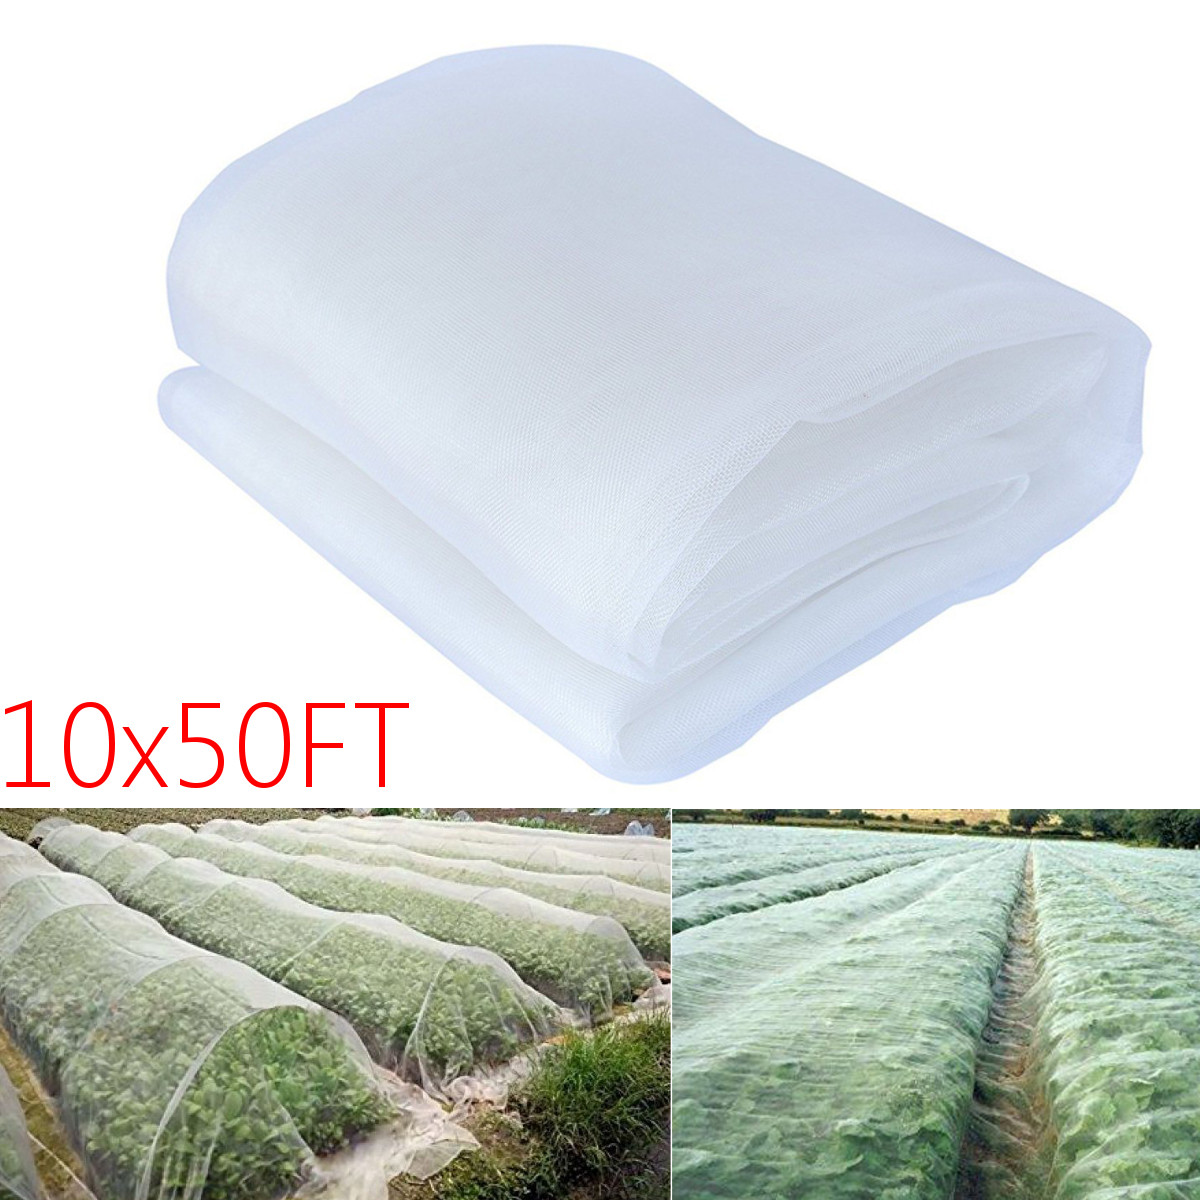 15m Garden Pest Insect Anti bird Net Plant Vegetable Fruit Protection Cover Nylon 40Mesh Breathable Against Insect Pest|Plant Covers| |  - title=